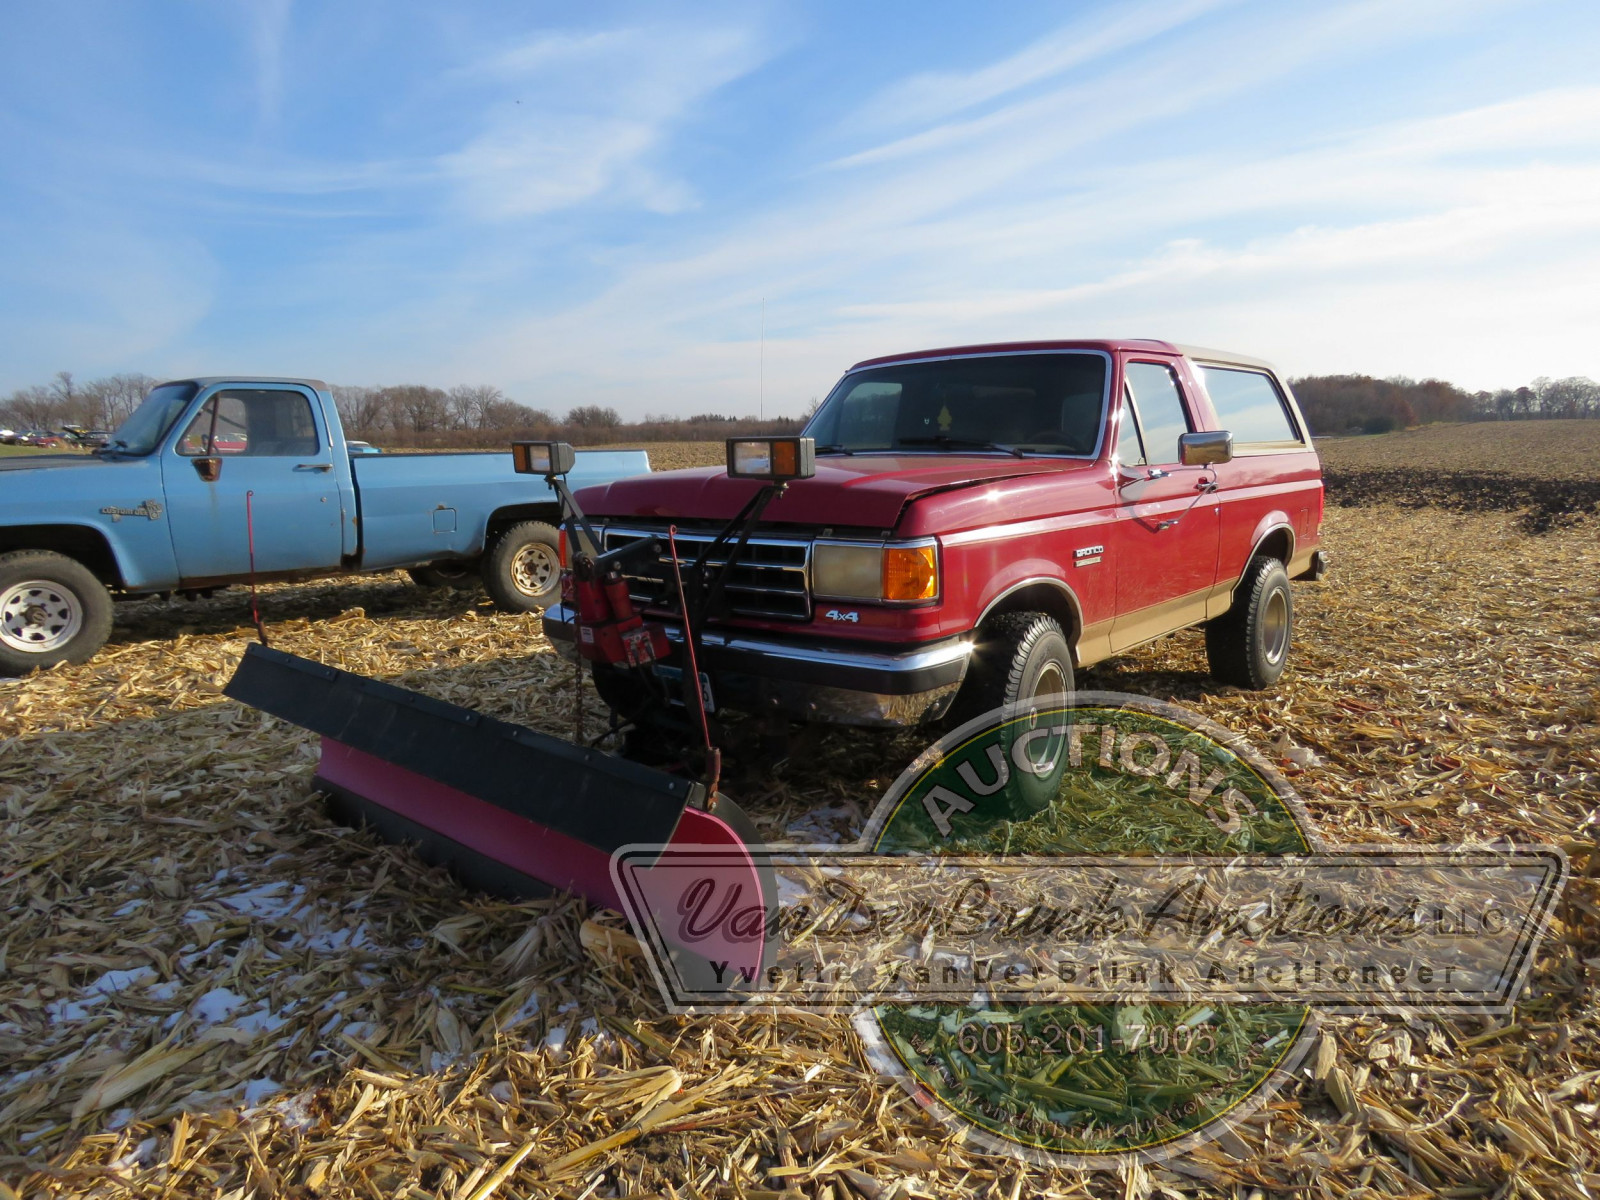 1989 Ford Bronco with Snowplow - Image 1